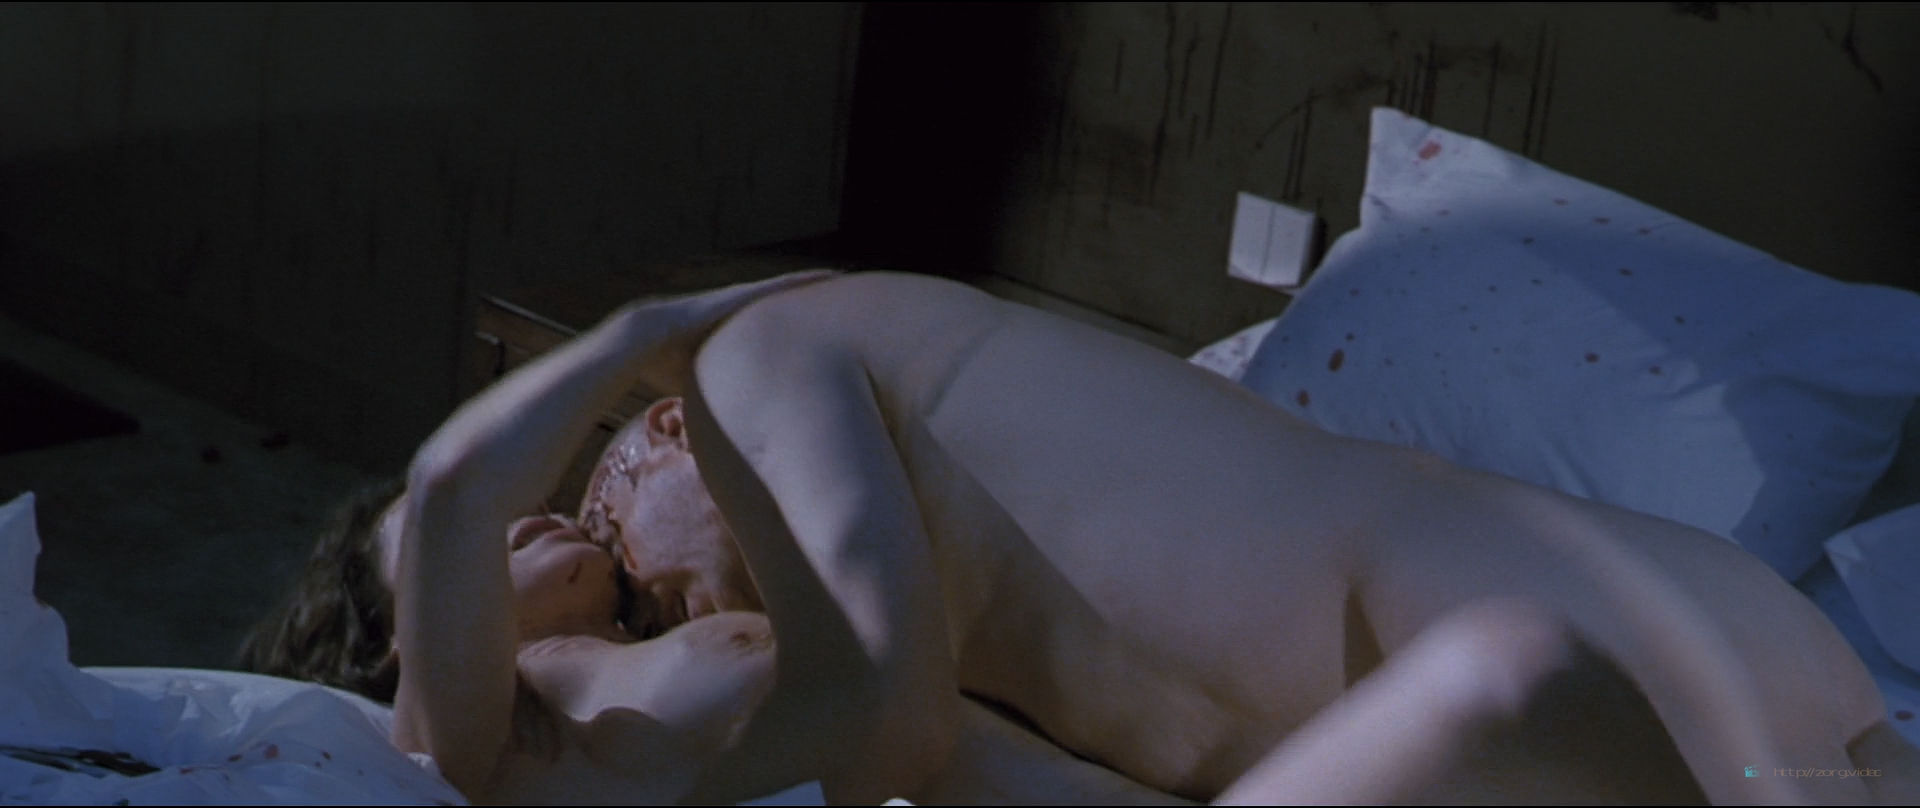 Connie Nielsen nude and Chloë Sevigny butt - Demonlover (2002) HD 1080p BluRay (4)